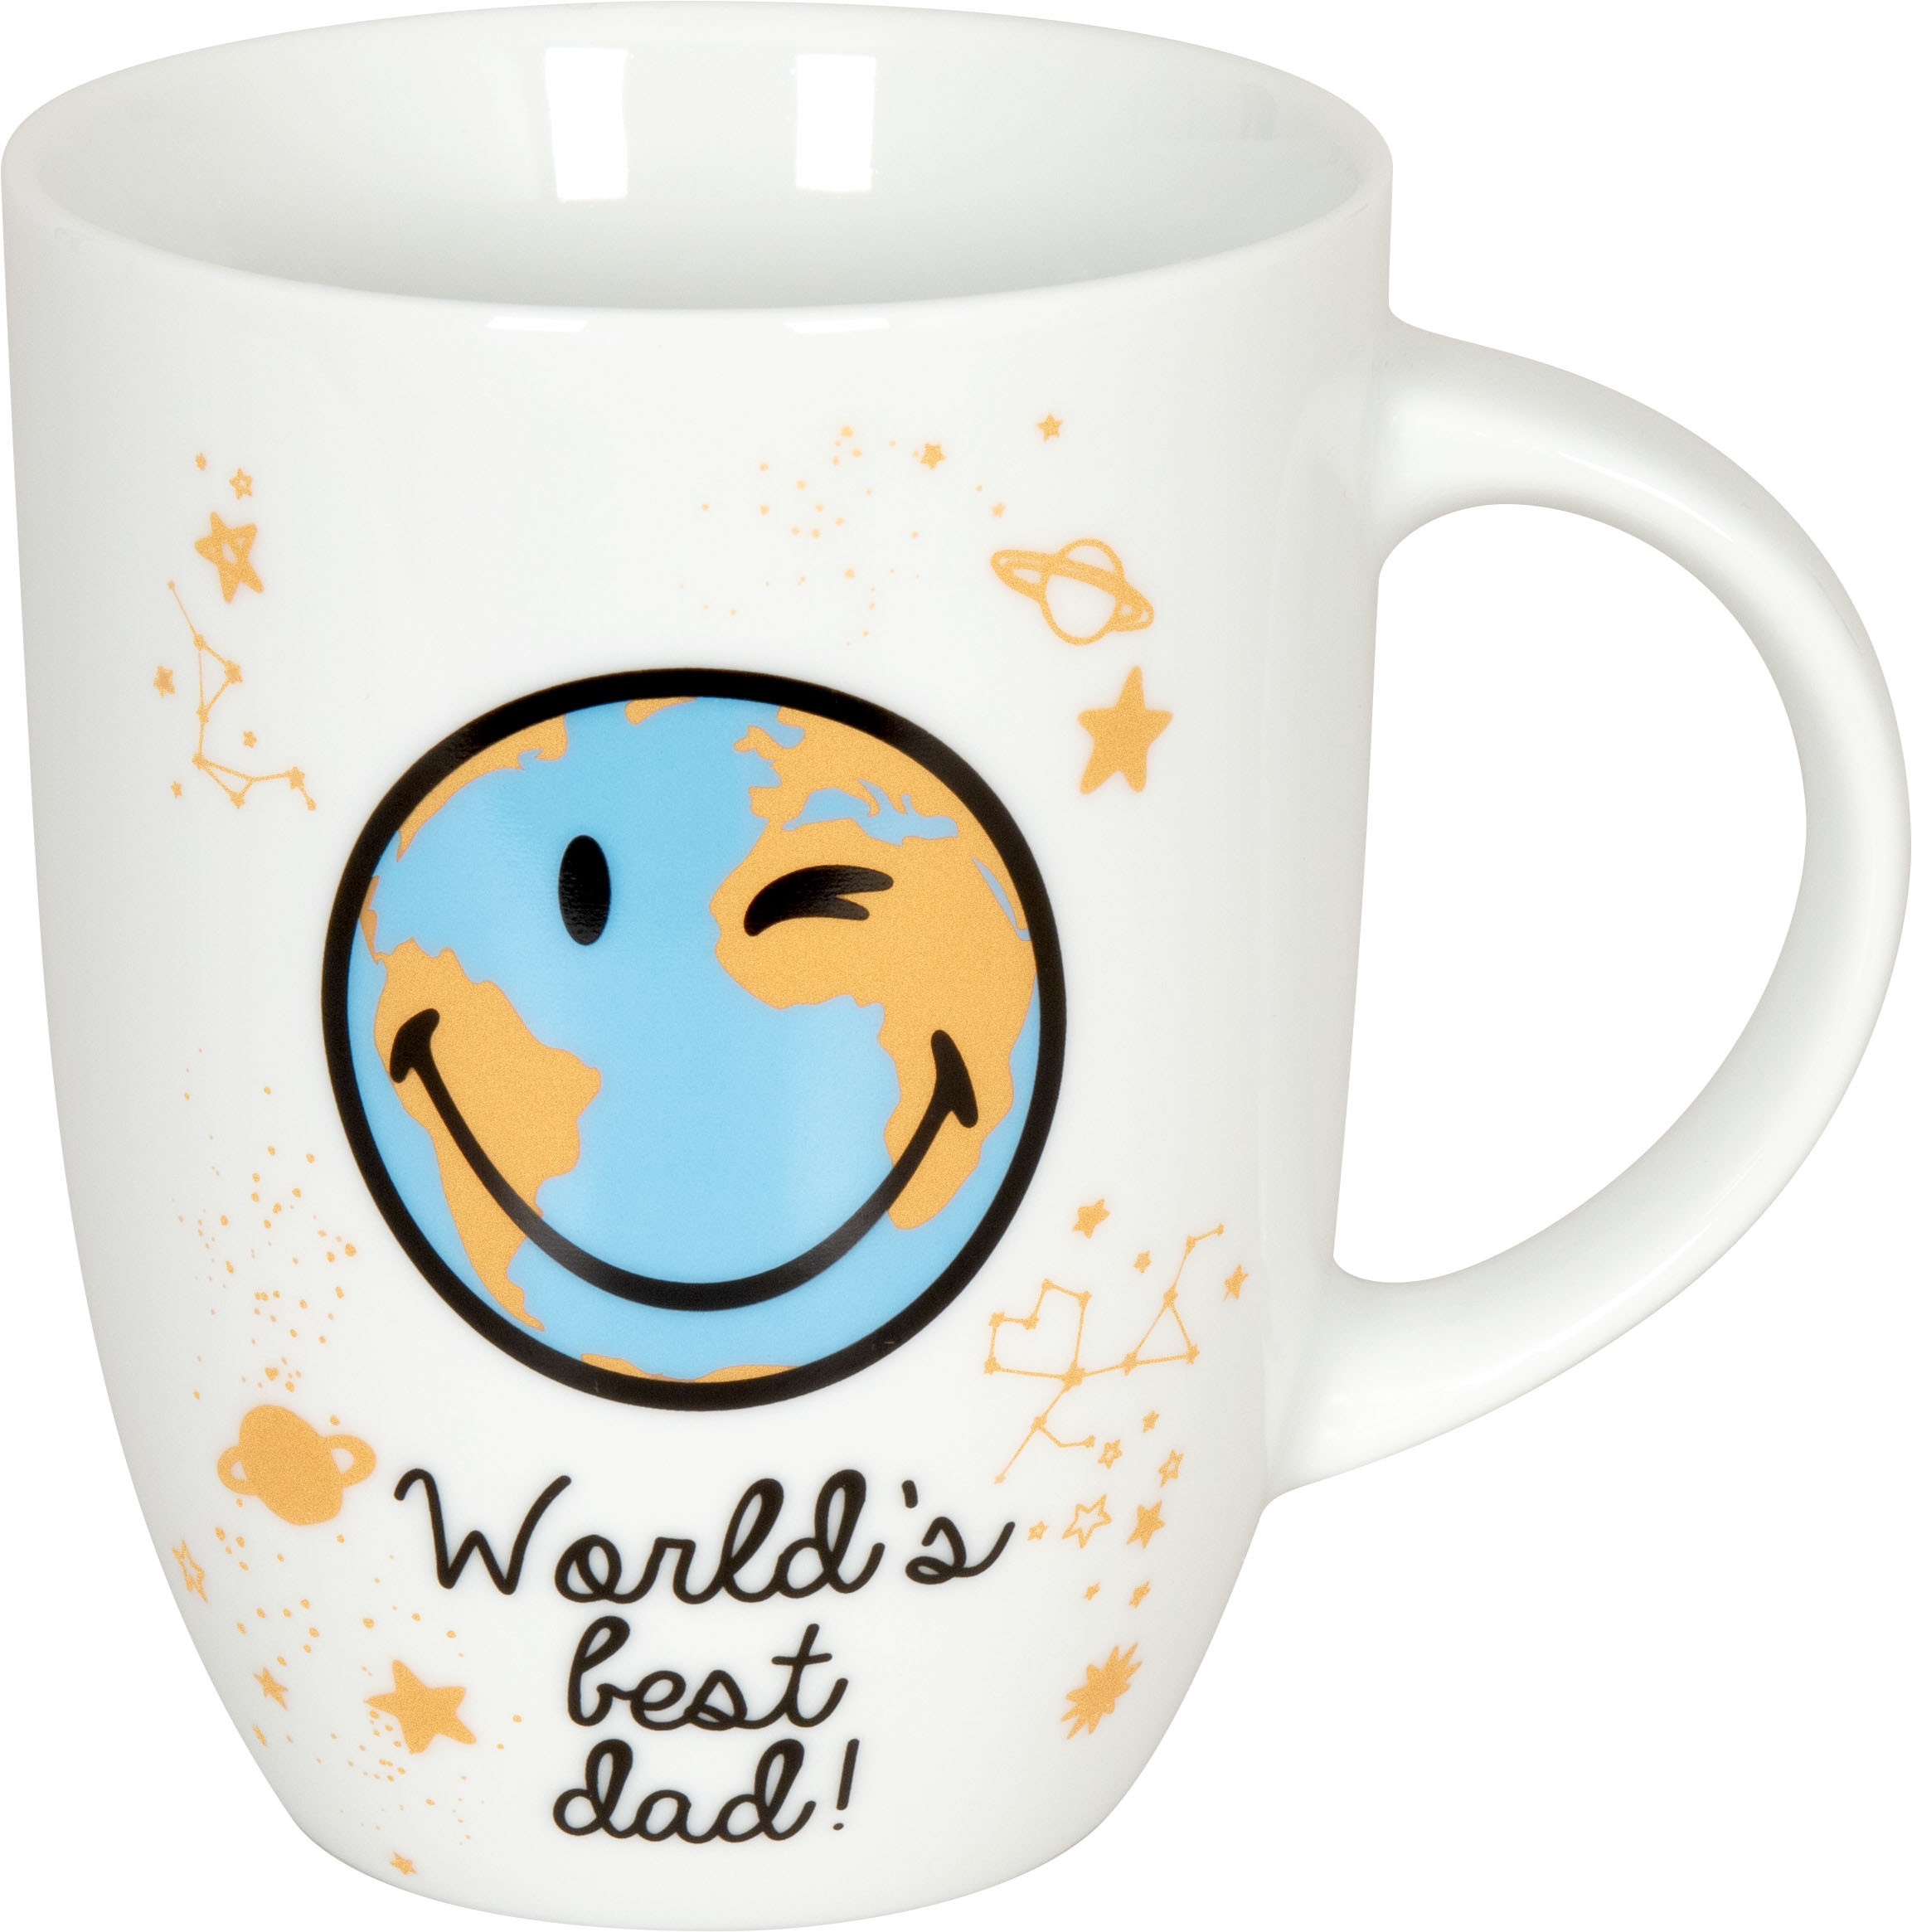 Becher Smiley World's best dad